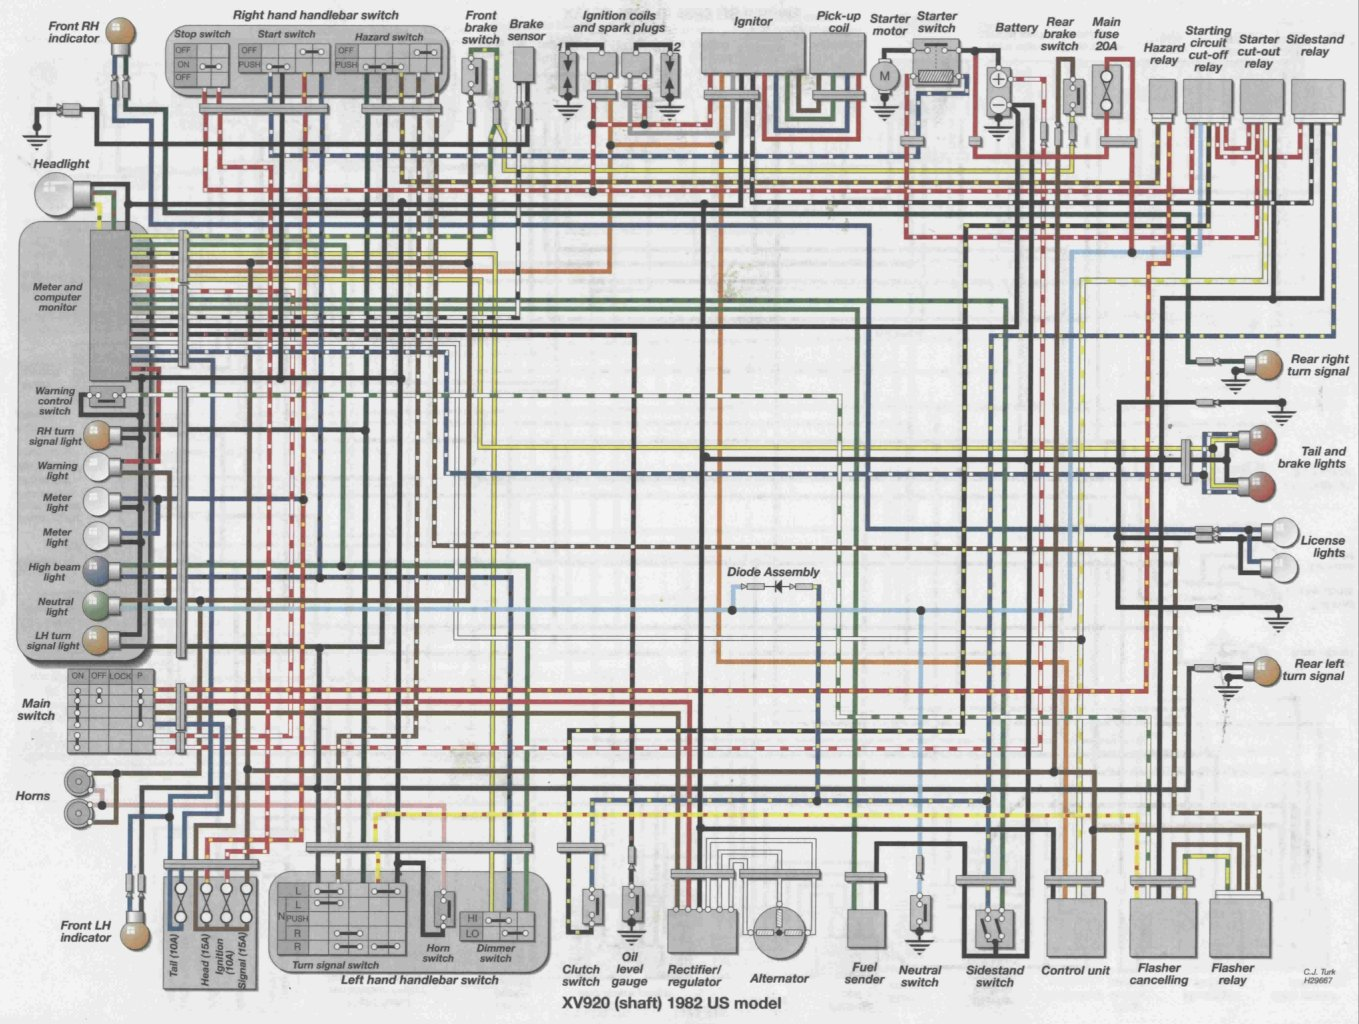 Yamaha 750 Wiring Diagram | Wiring Diagram on